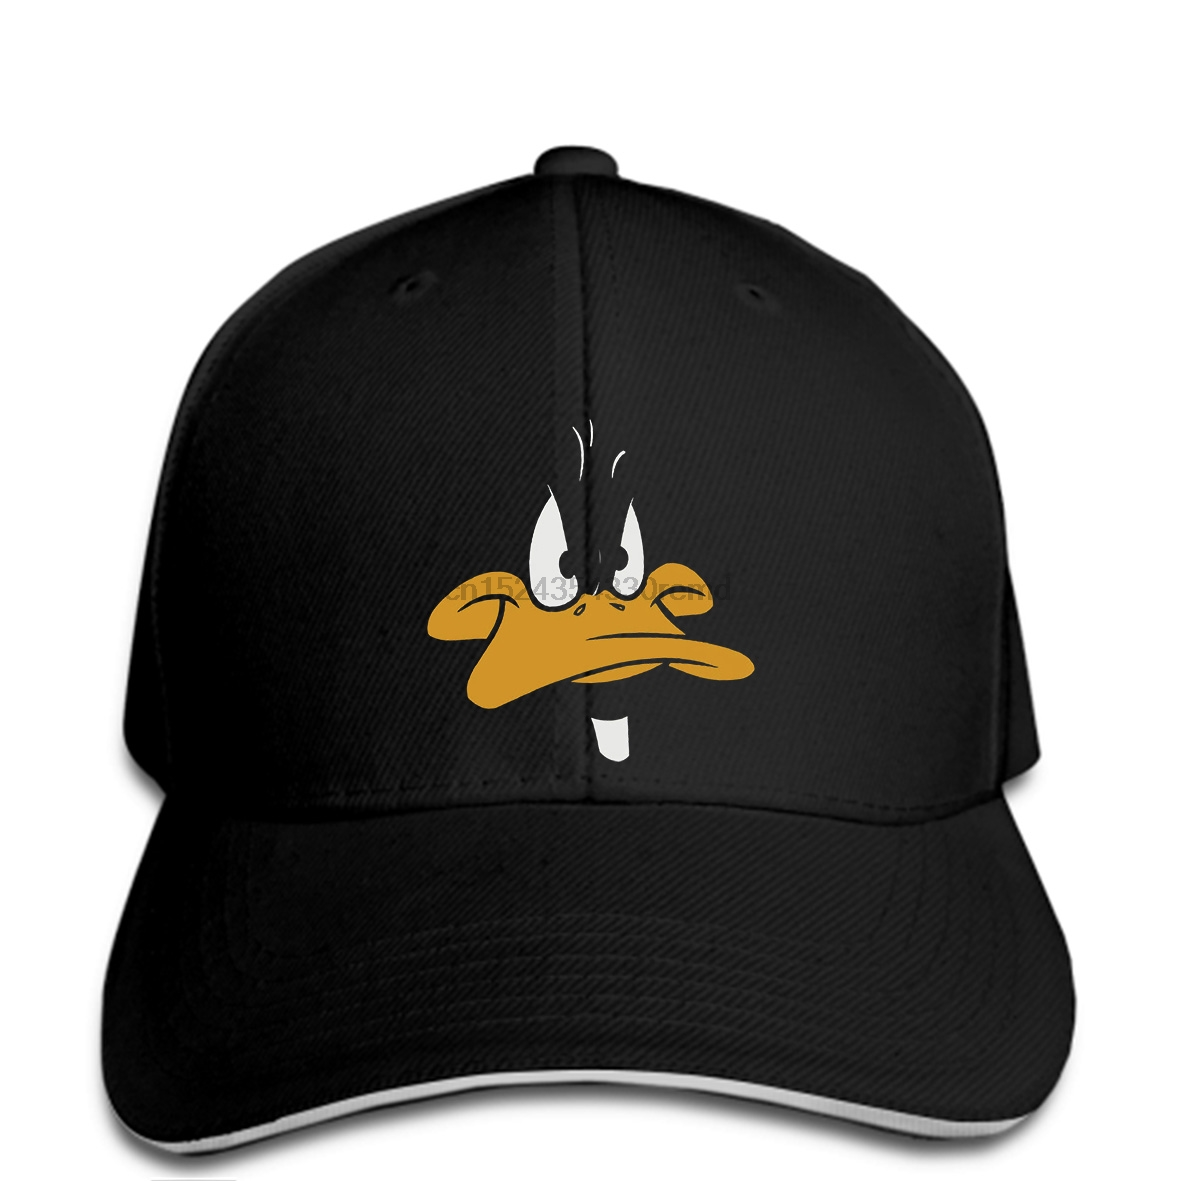 hip hop Baseball caps Funny Men hat cap Black Details About Looney Tunes  Men s Daffy Duck 53b70e22de2